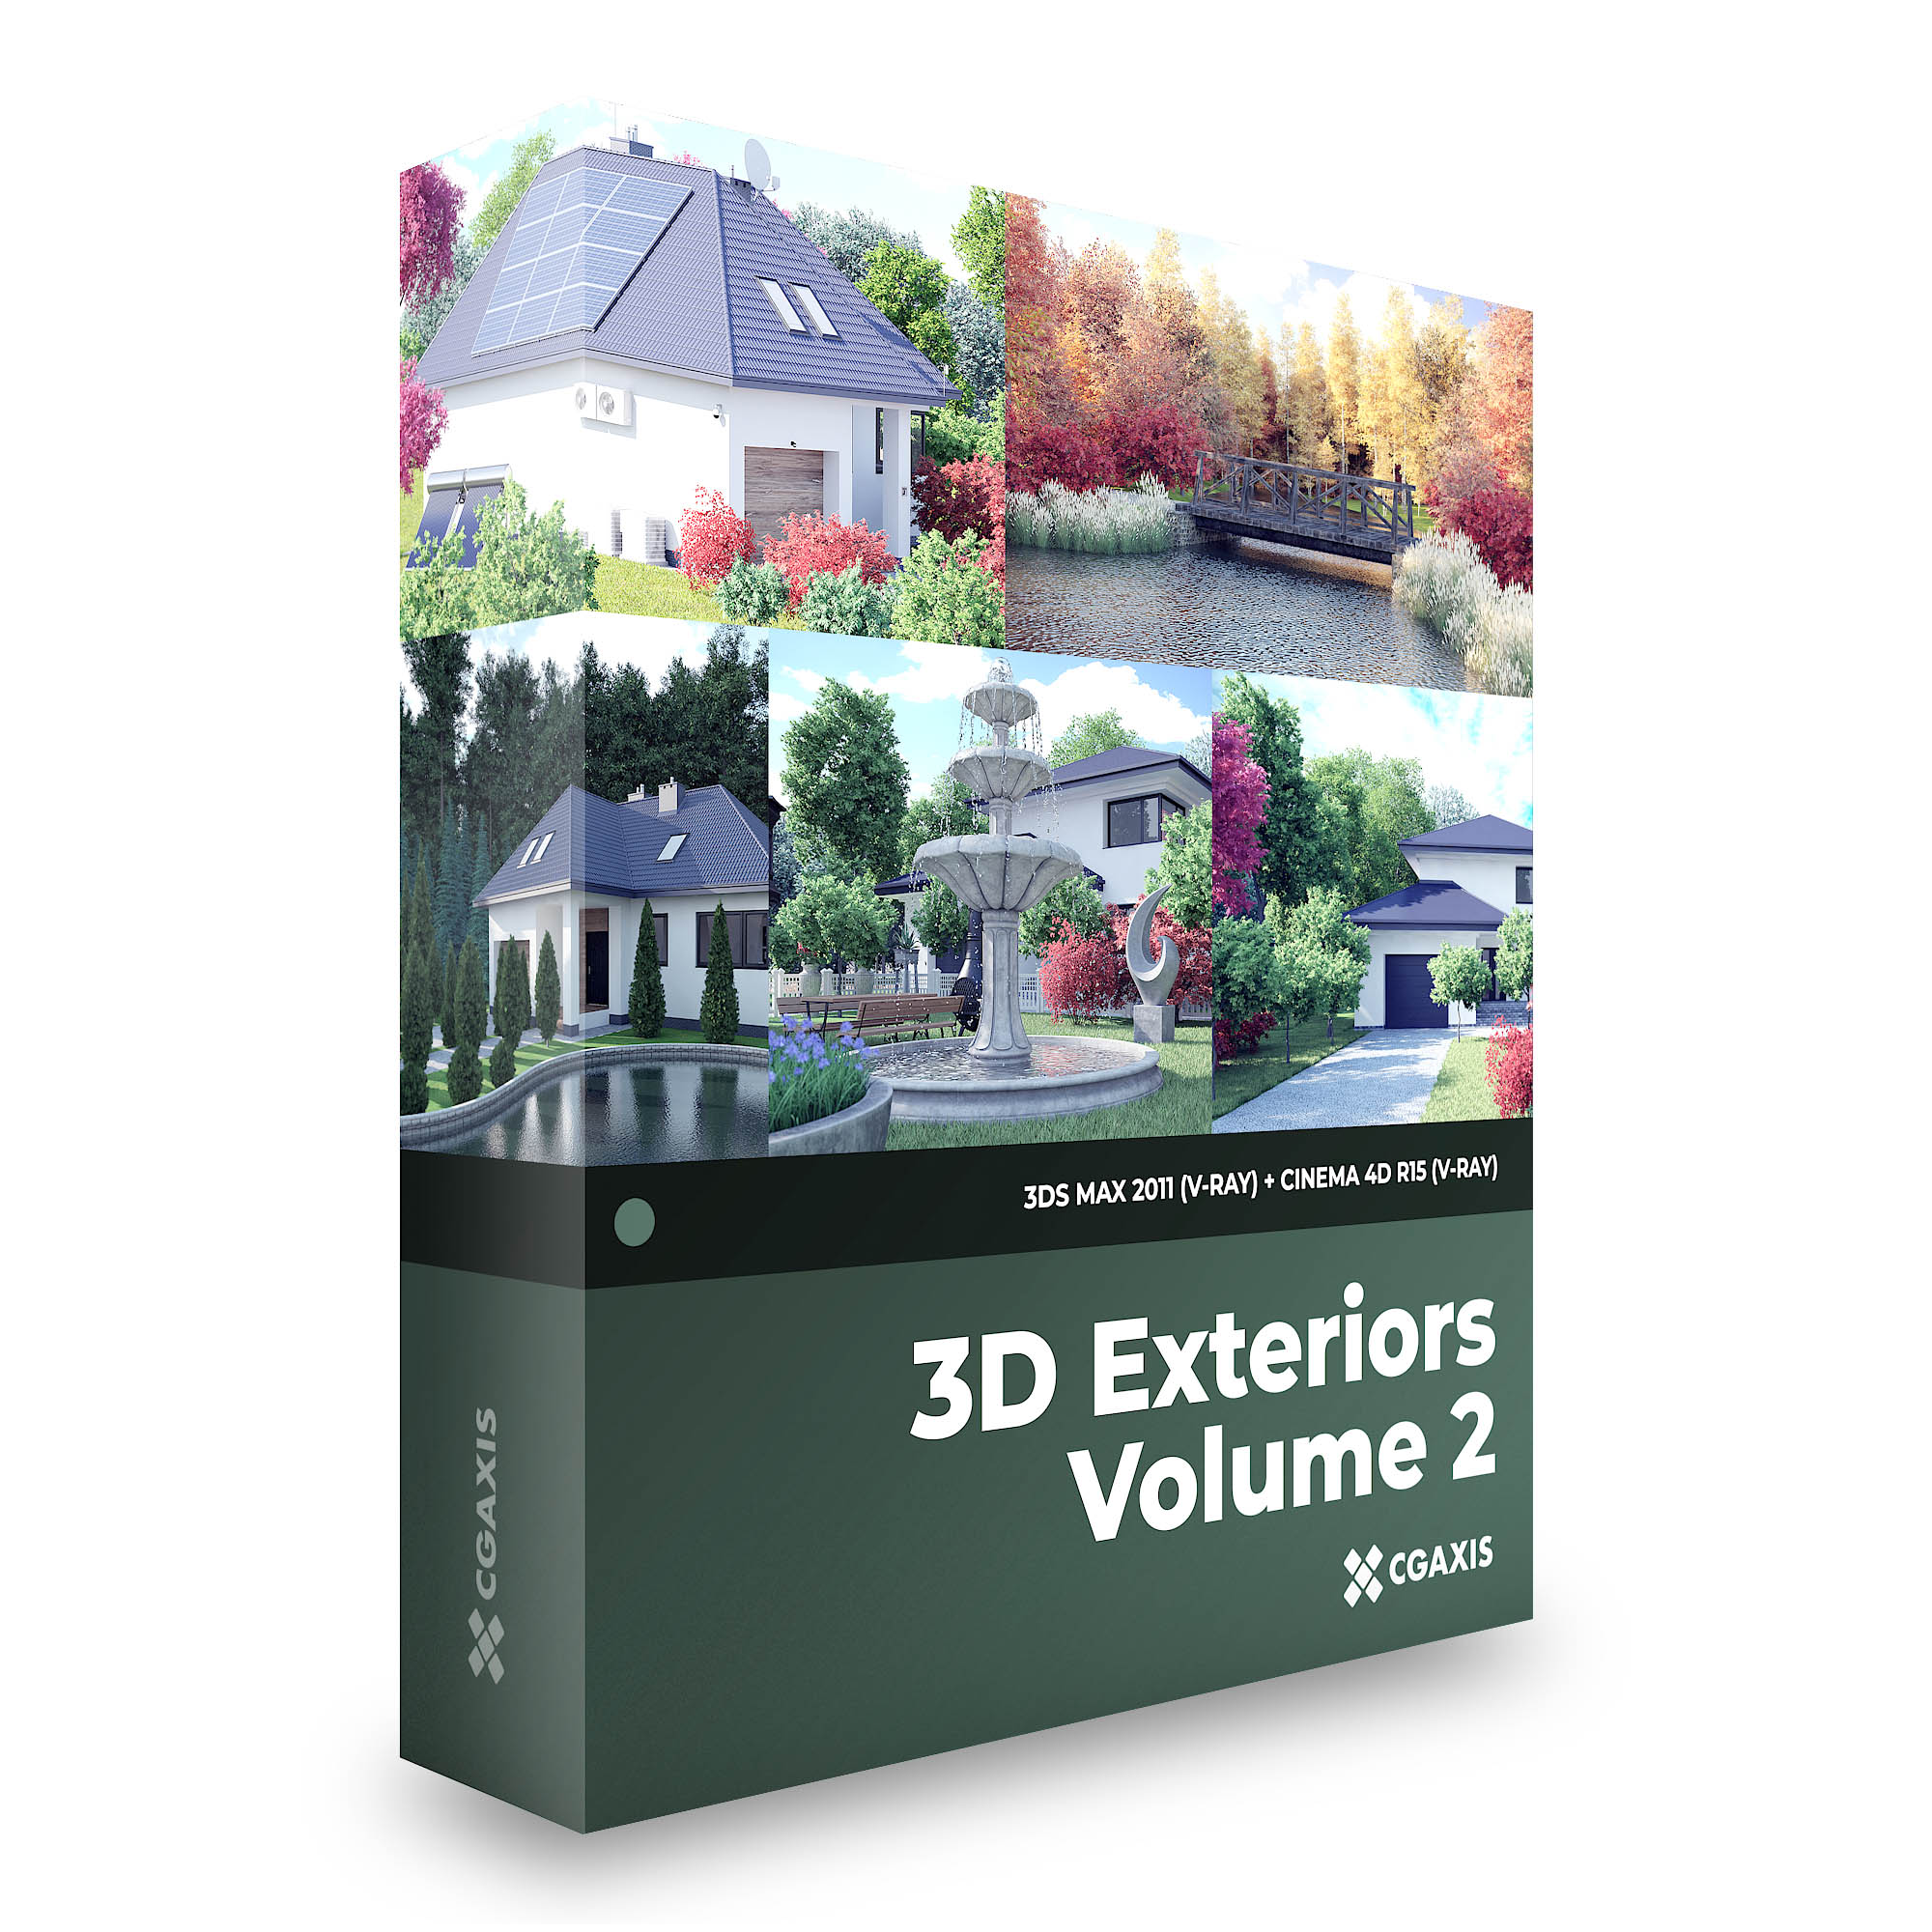 3D Exteriors - CGAxis Collection Volume 2